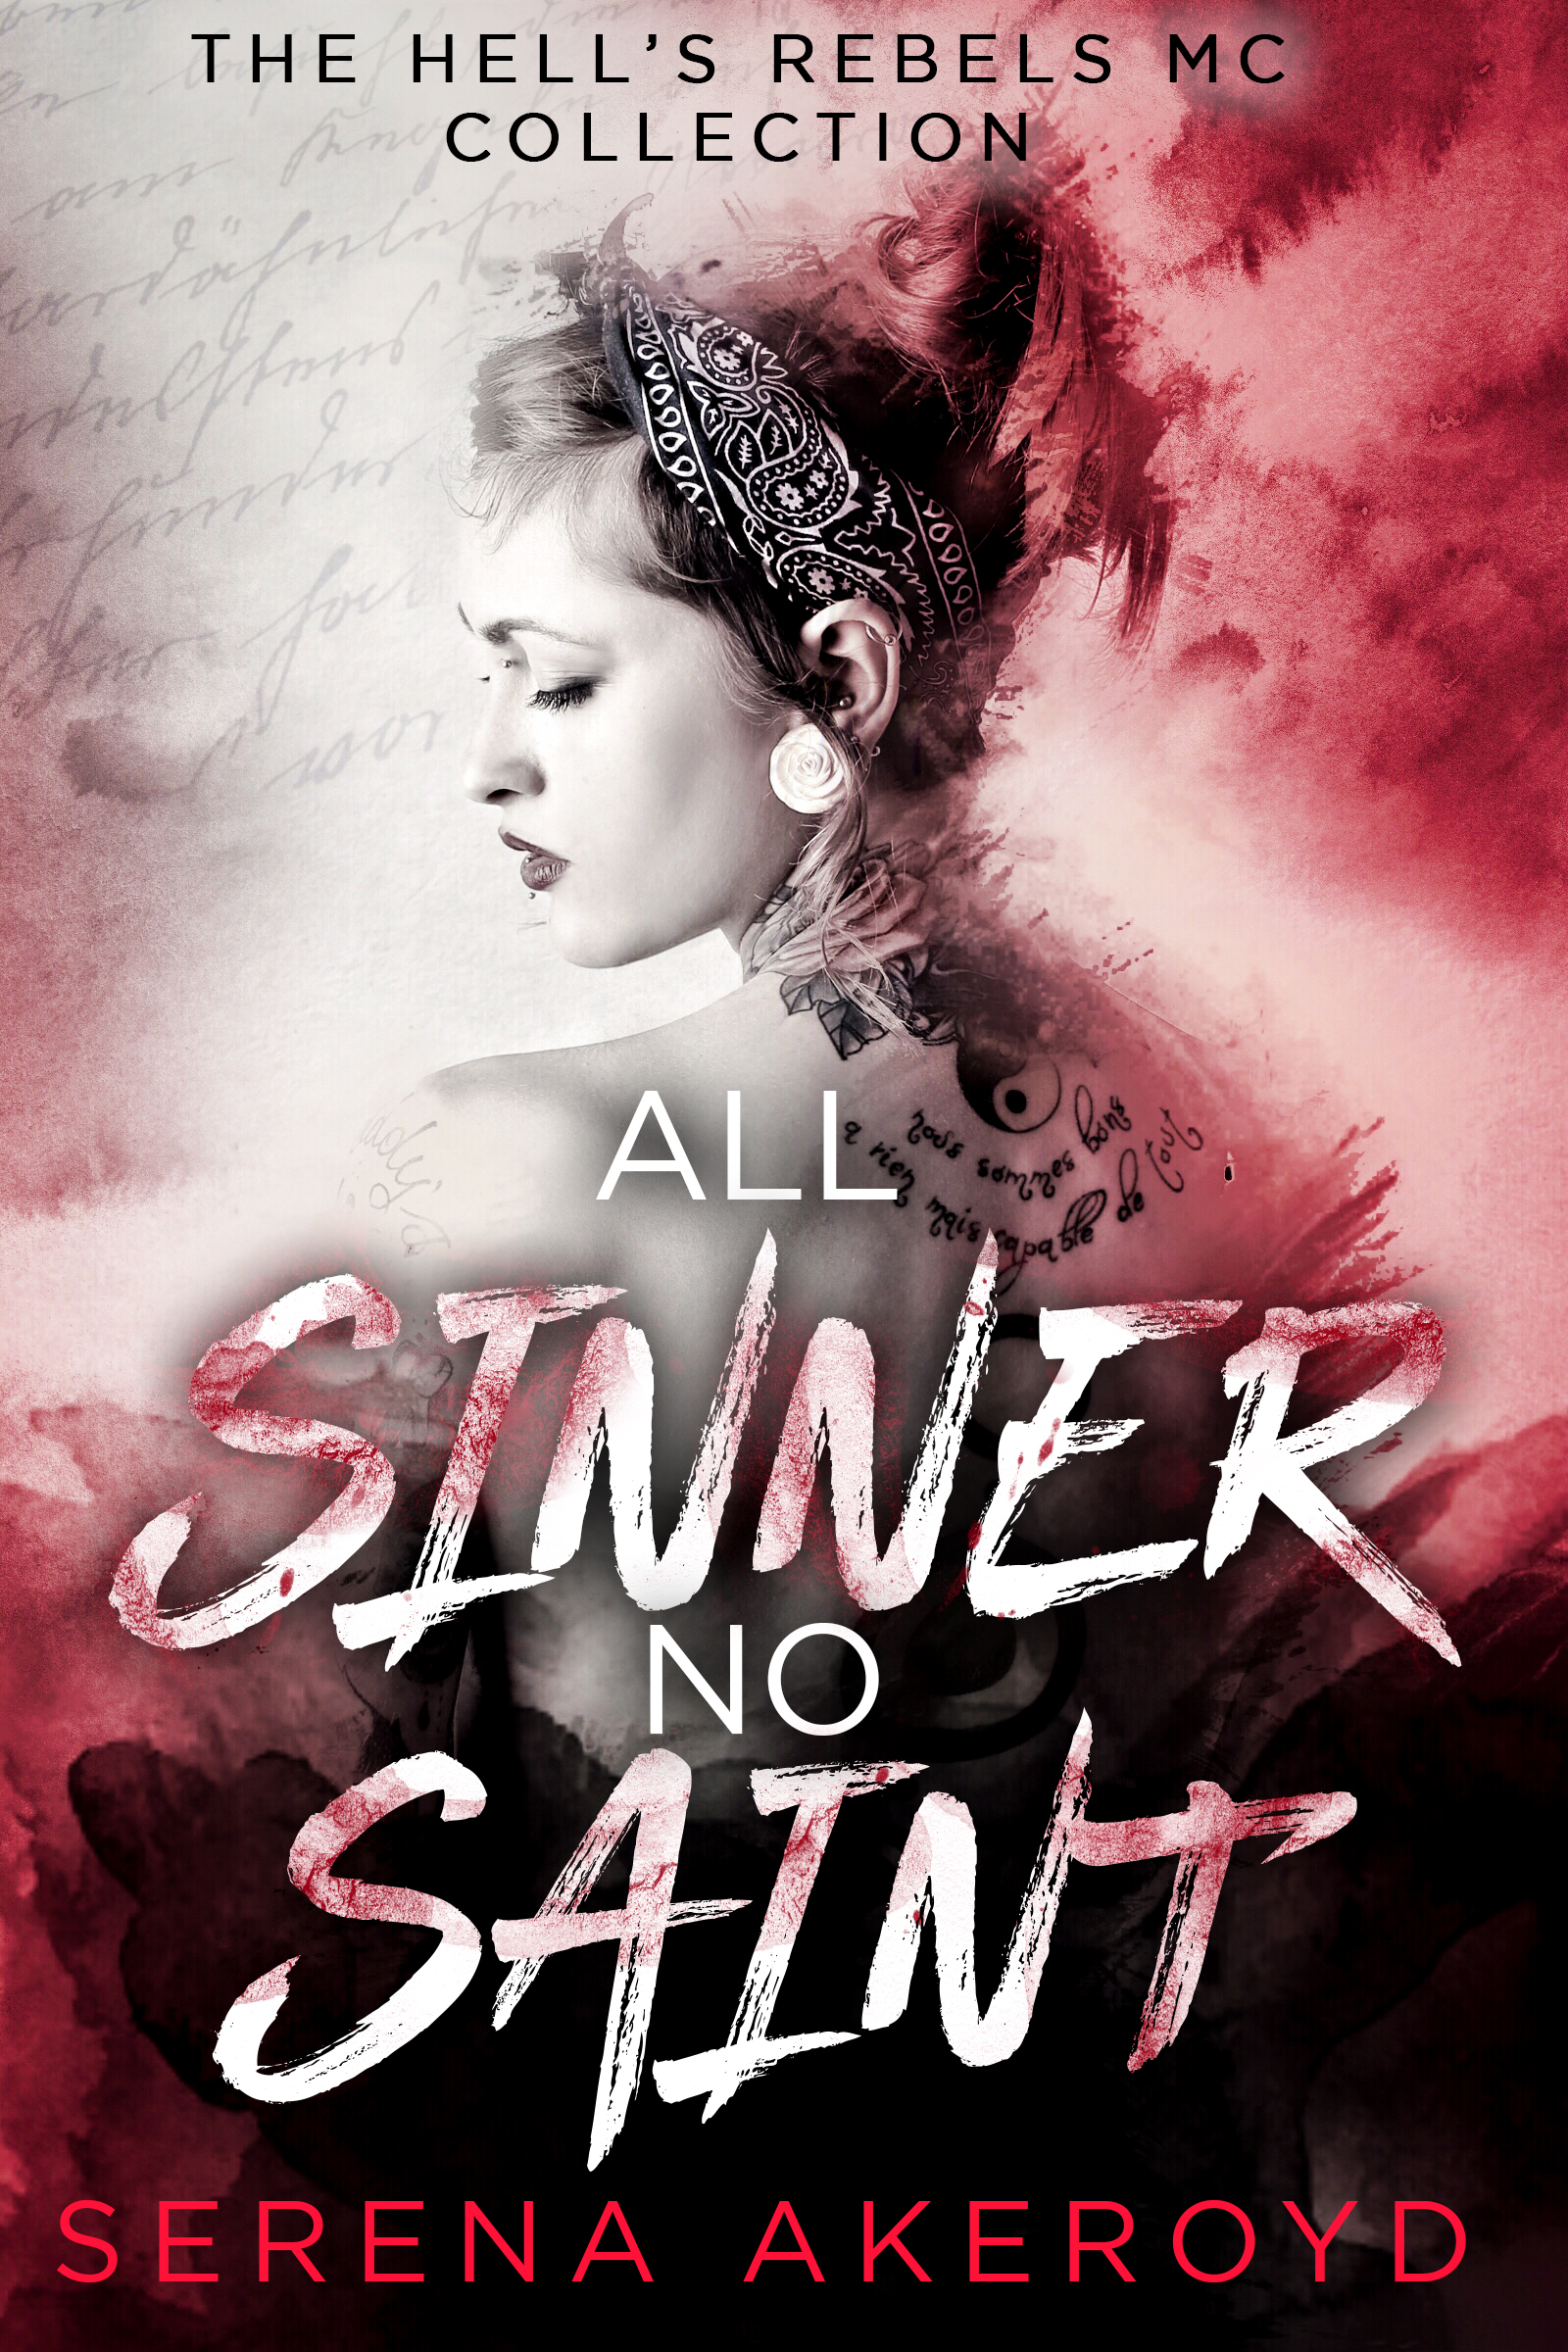 Cover for All Sinner No Saint and link to purchase